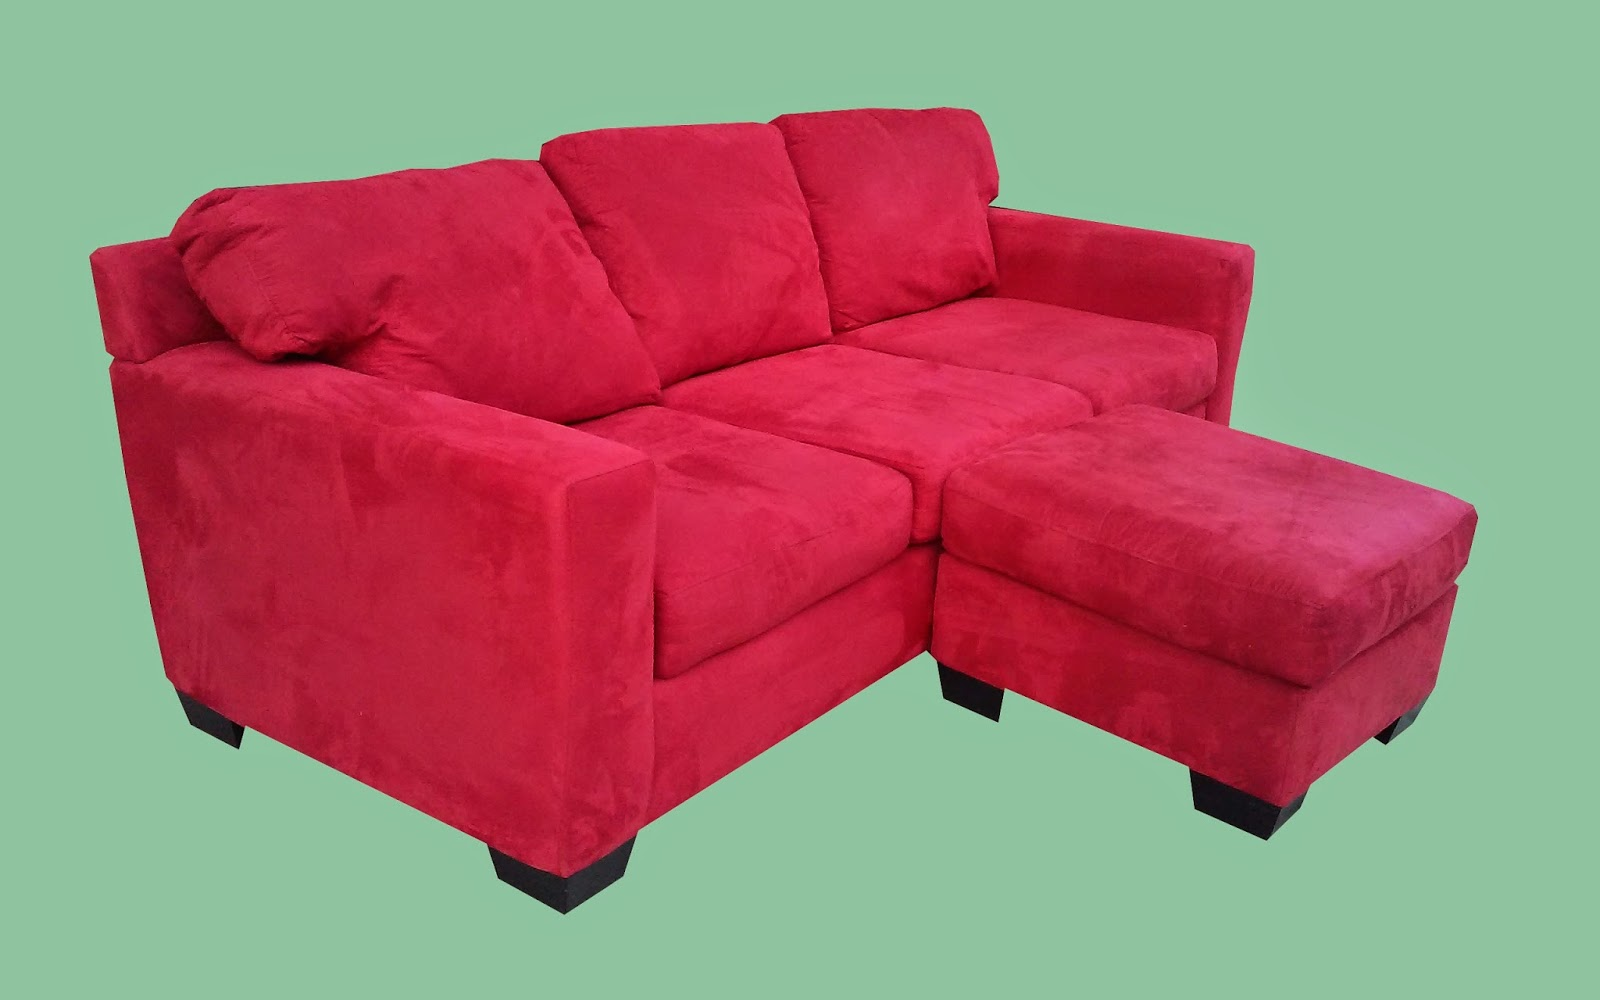 Uhuru Furniture Collectibles Plush Red Microfiber Sofa